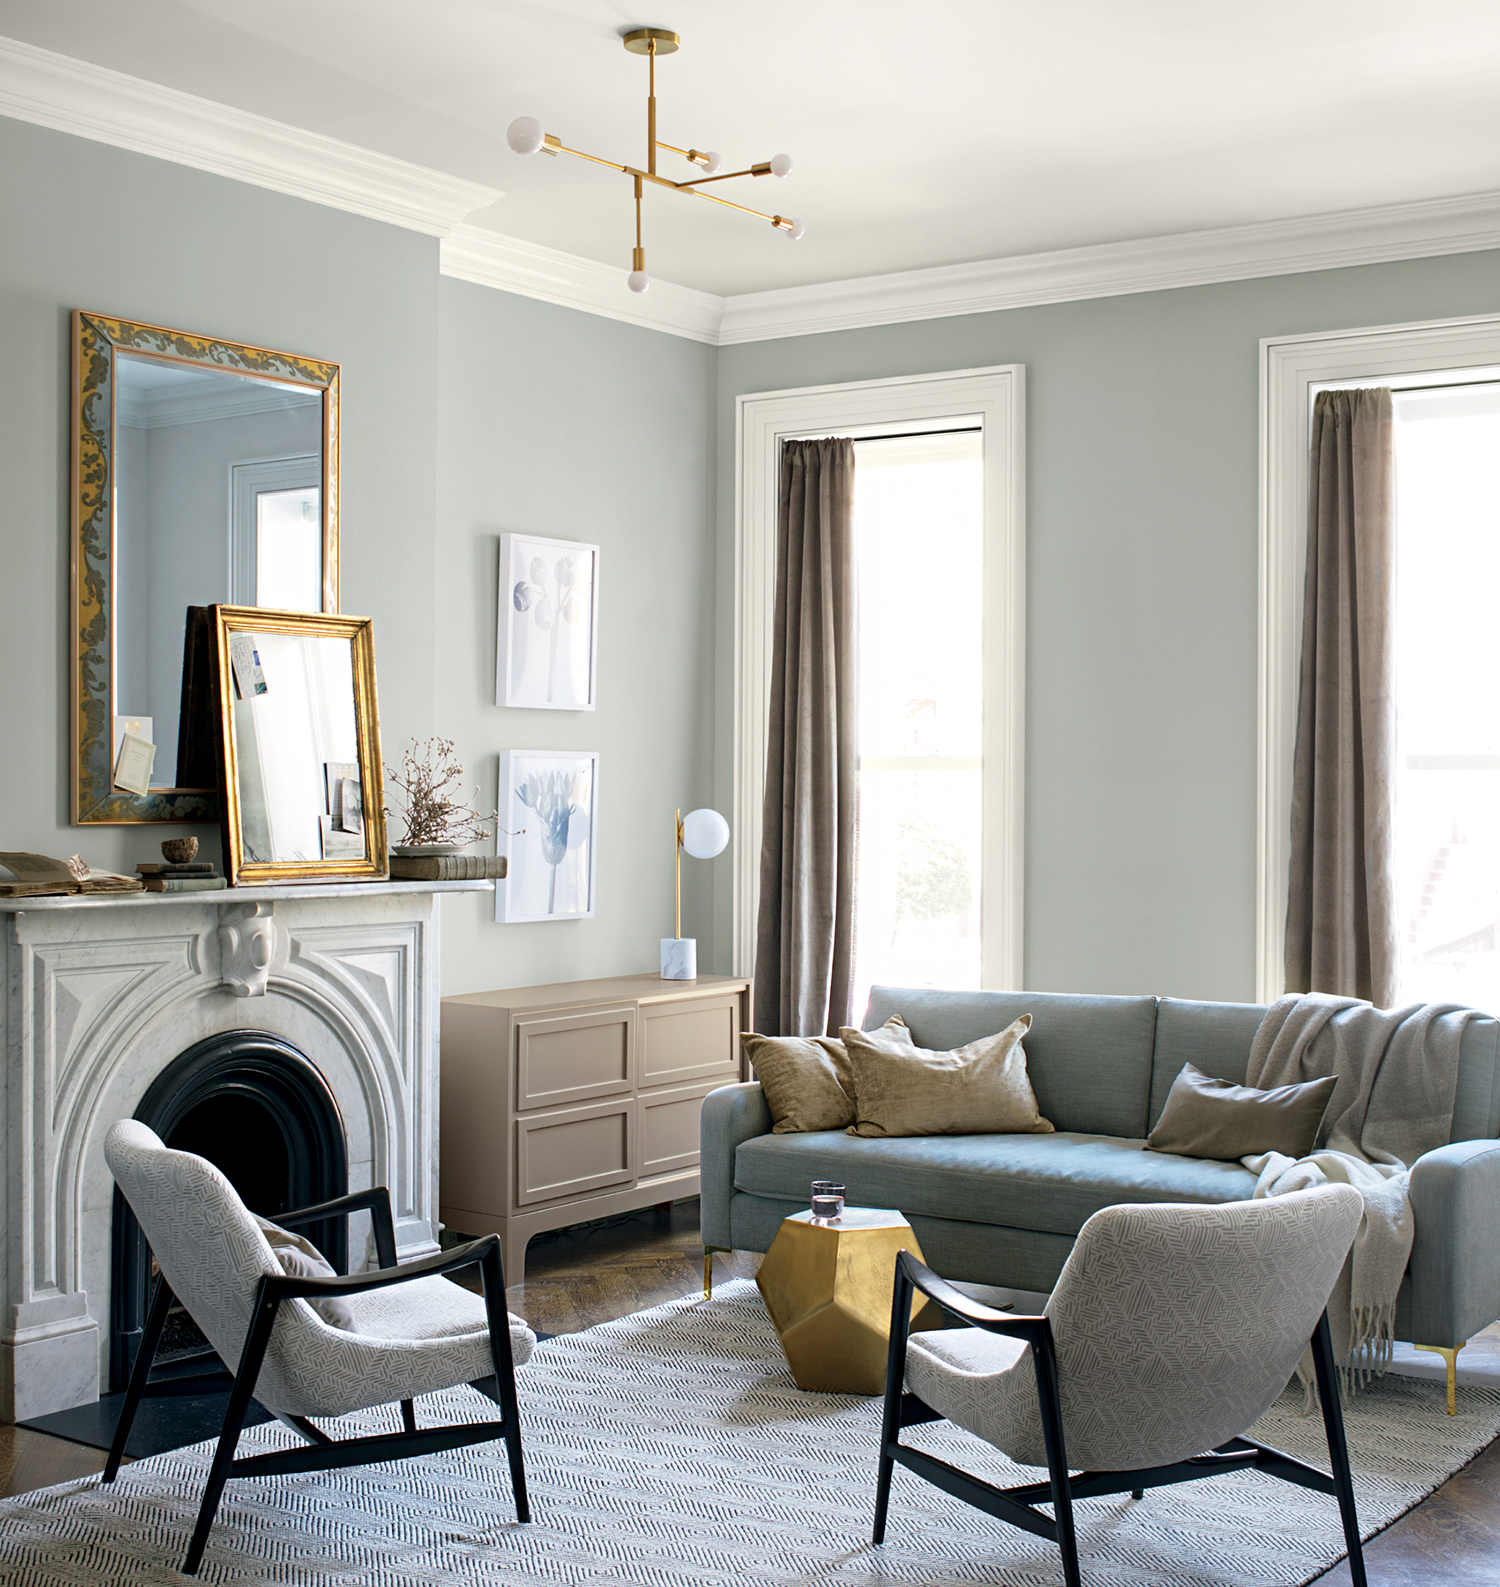 10 Small Space Living Room Decorating Ideas Interior Designers Swear By Martha Stewart